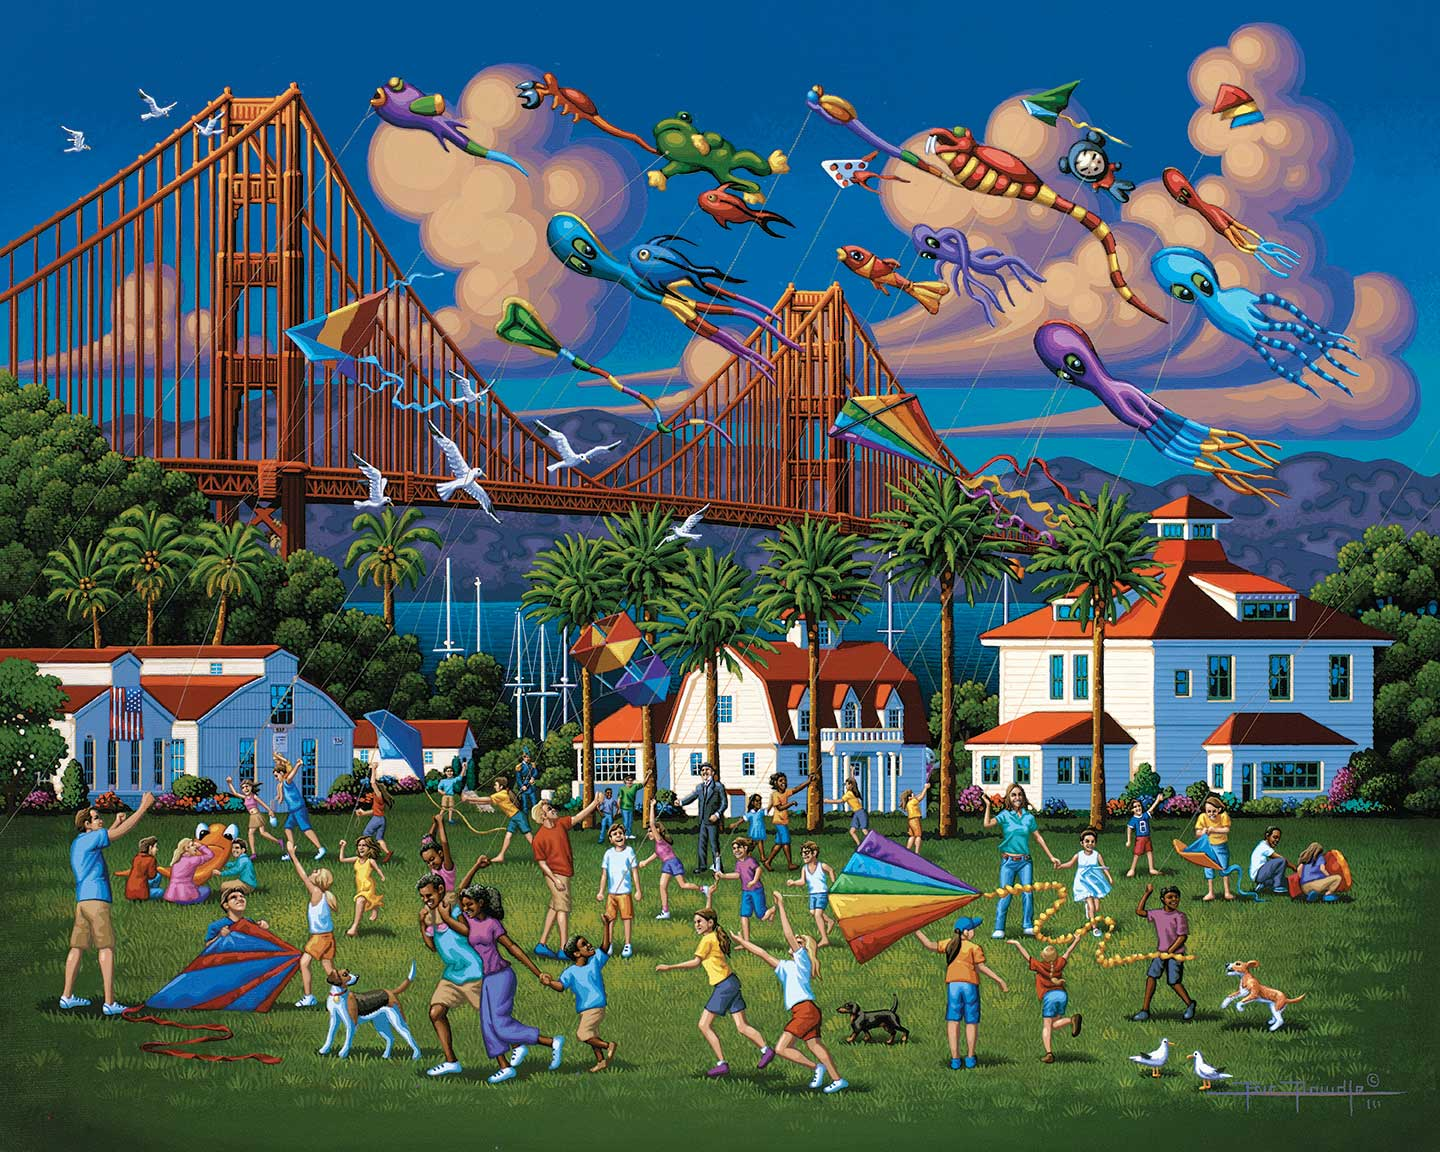 Golden Gate Bridge Landmarks / Monuments Jigsaw Puzzle